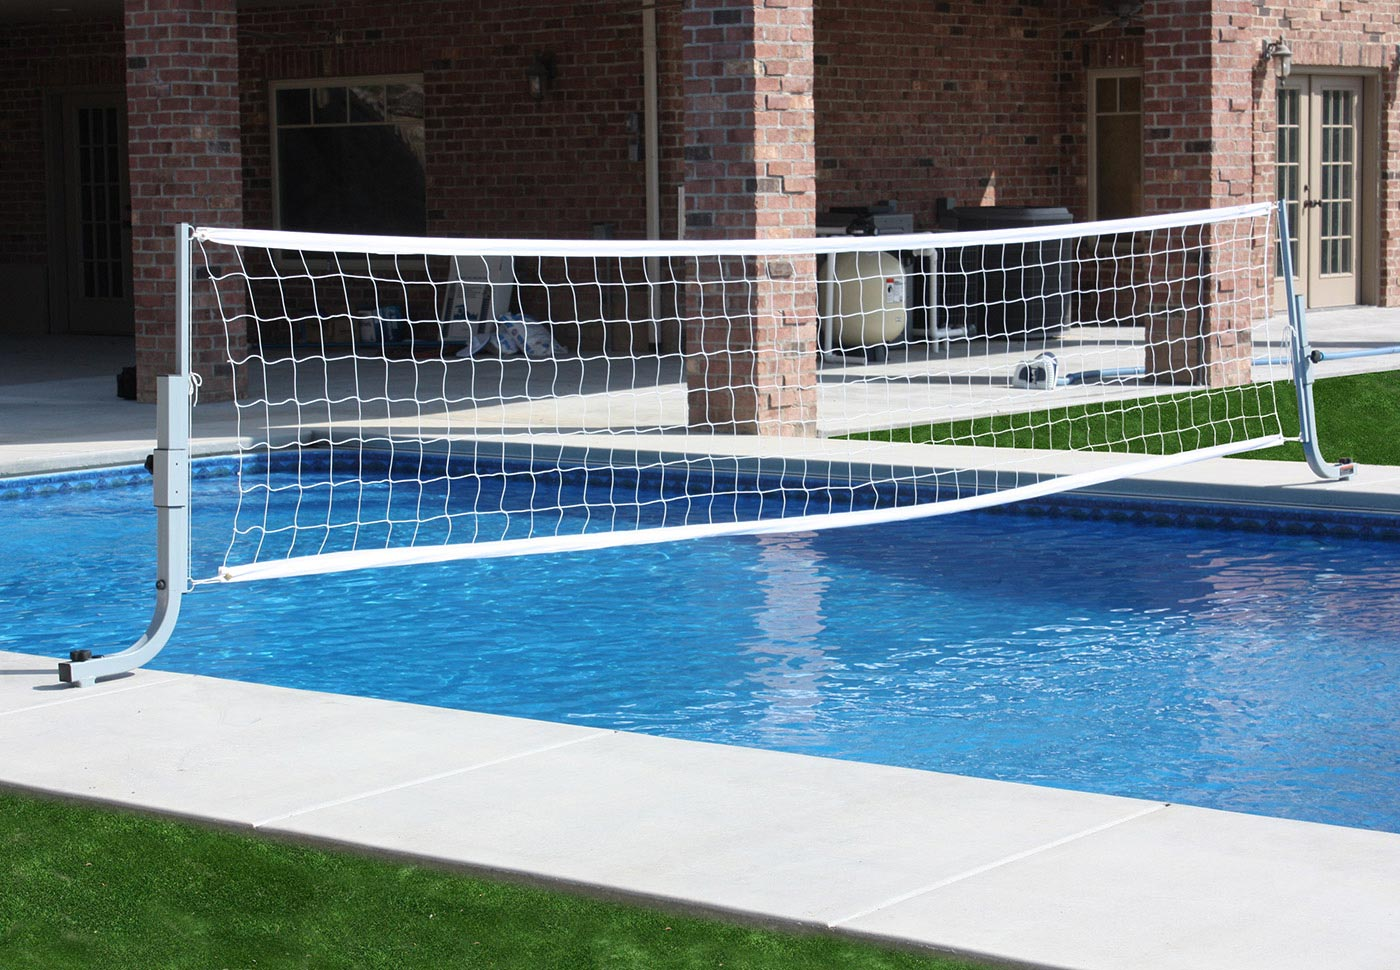 QuikSpike Pool Volleyball With In-Deck Anchor System BOXES B, B, E, G, G - SwimShape